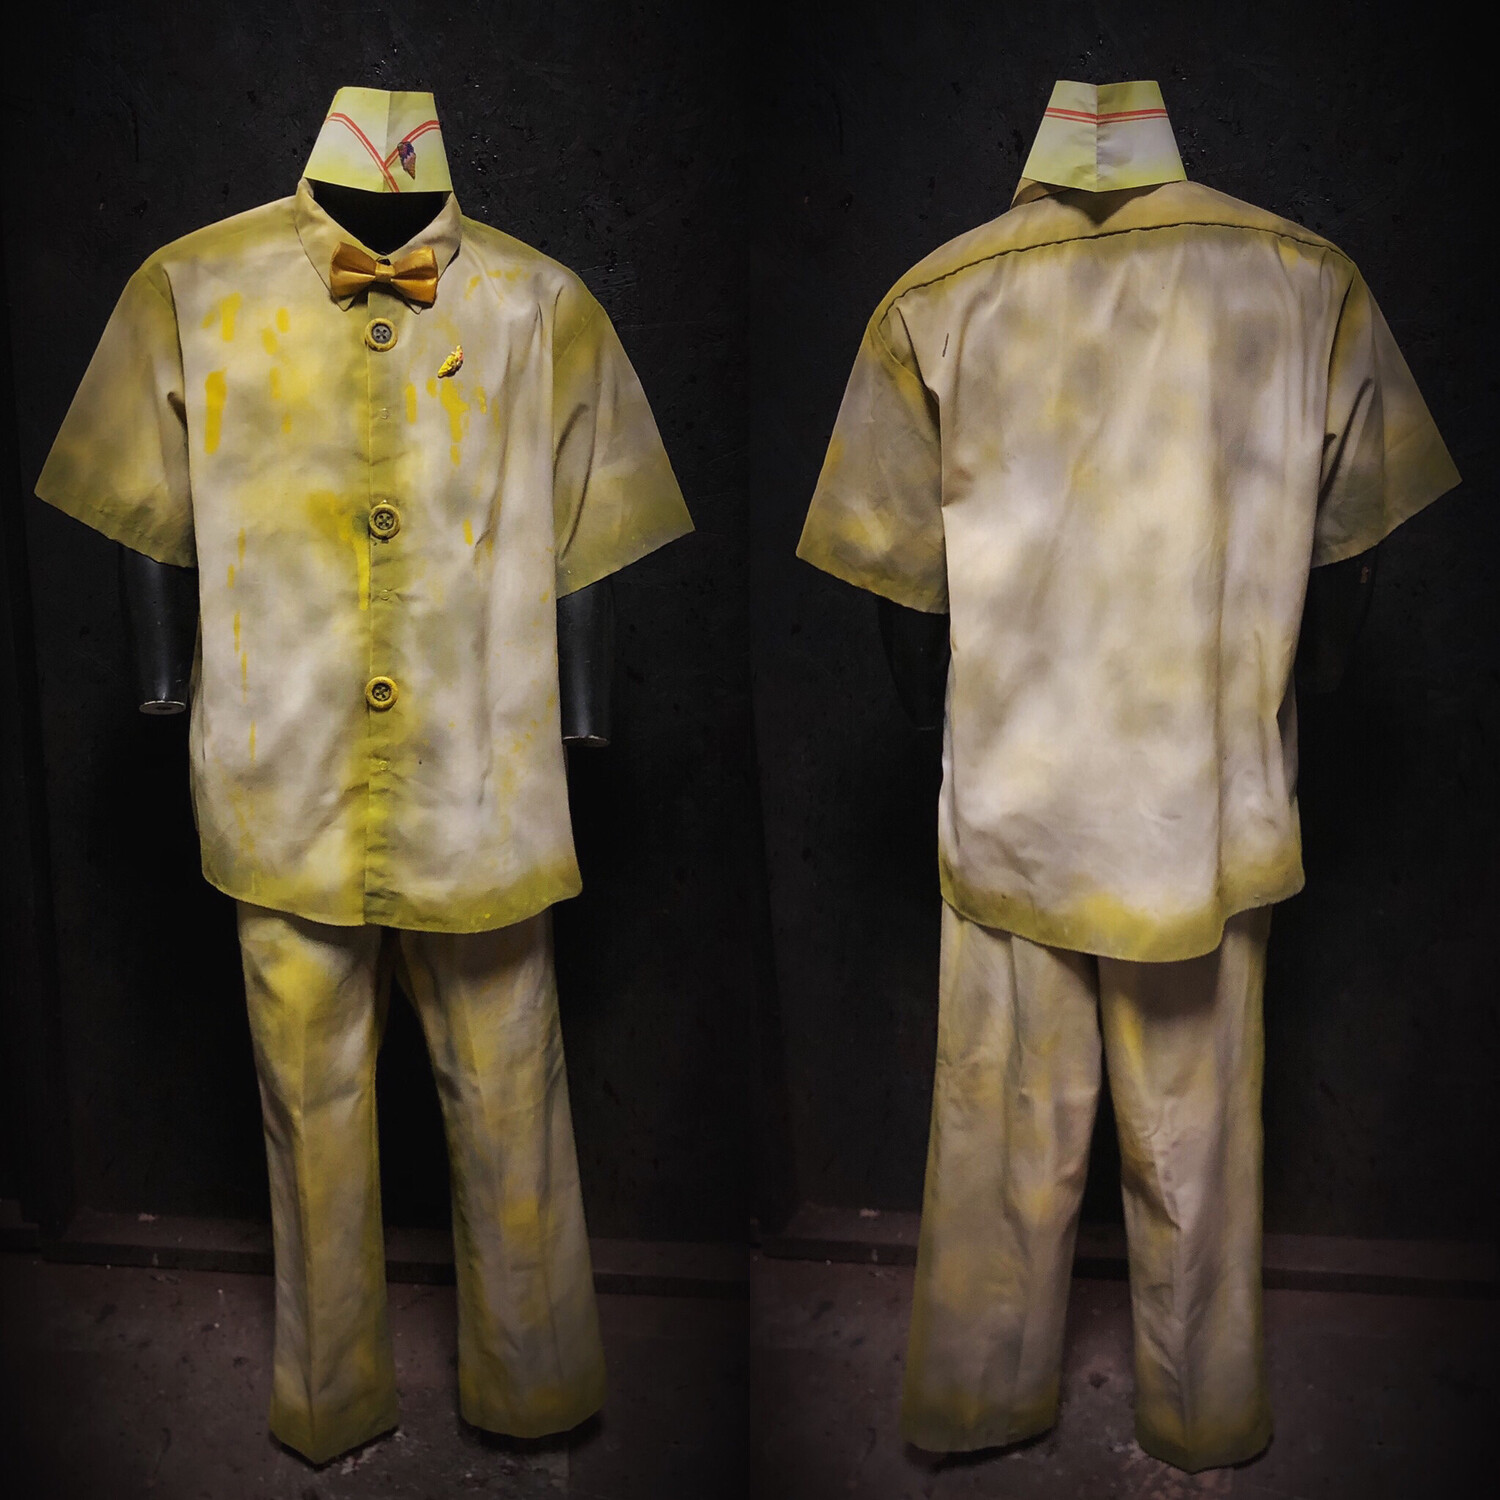 Yellow Ice Cream Clown Costume with Colored Bow Tie 3X